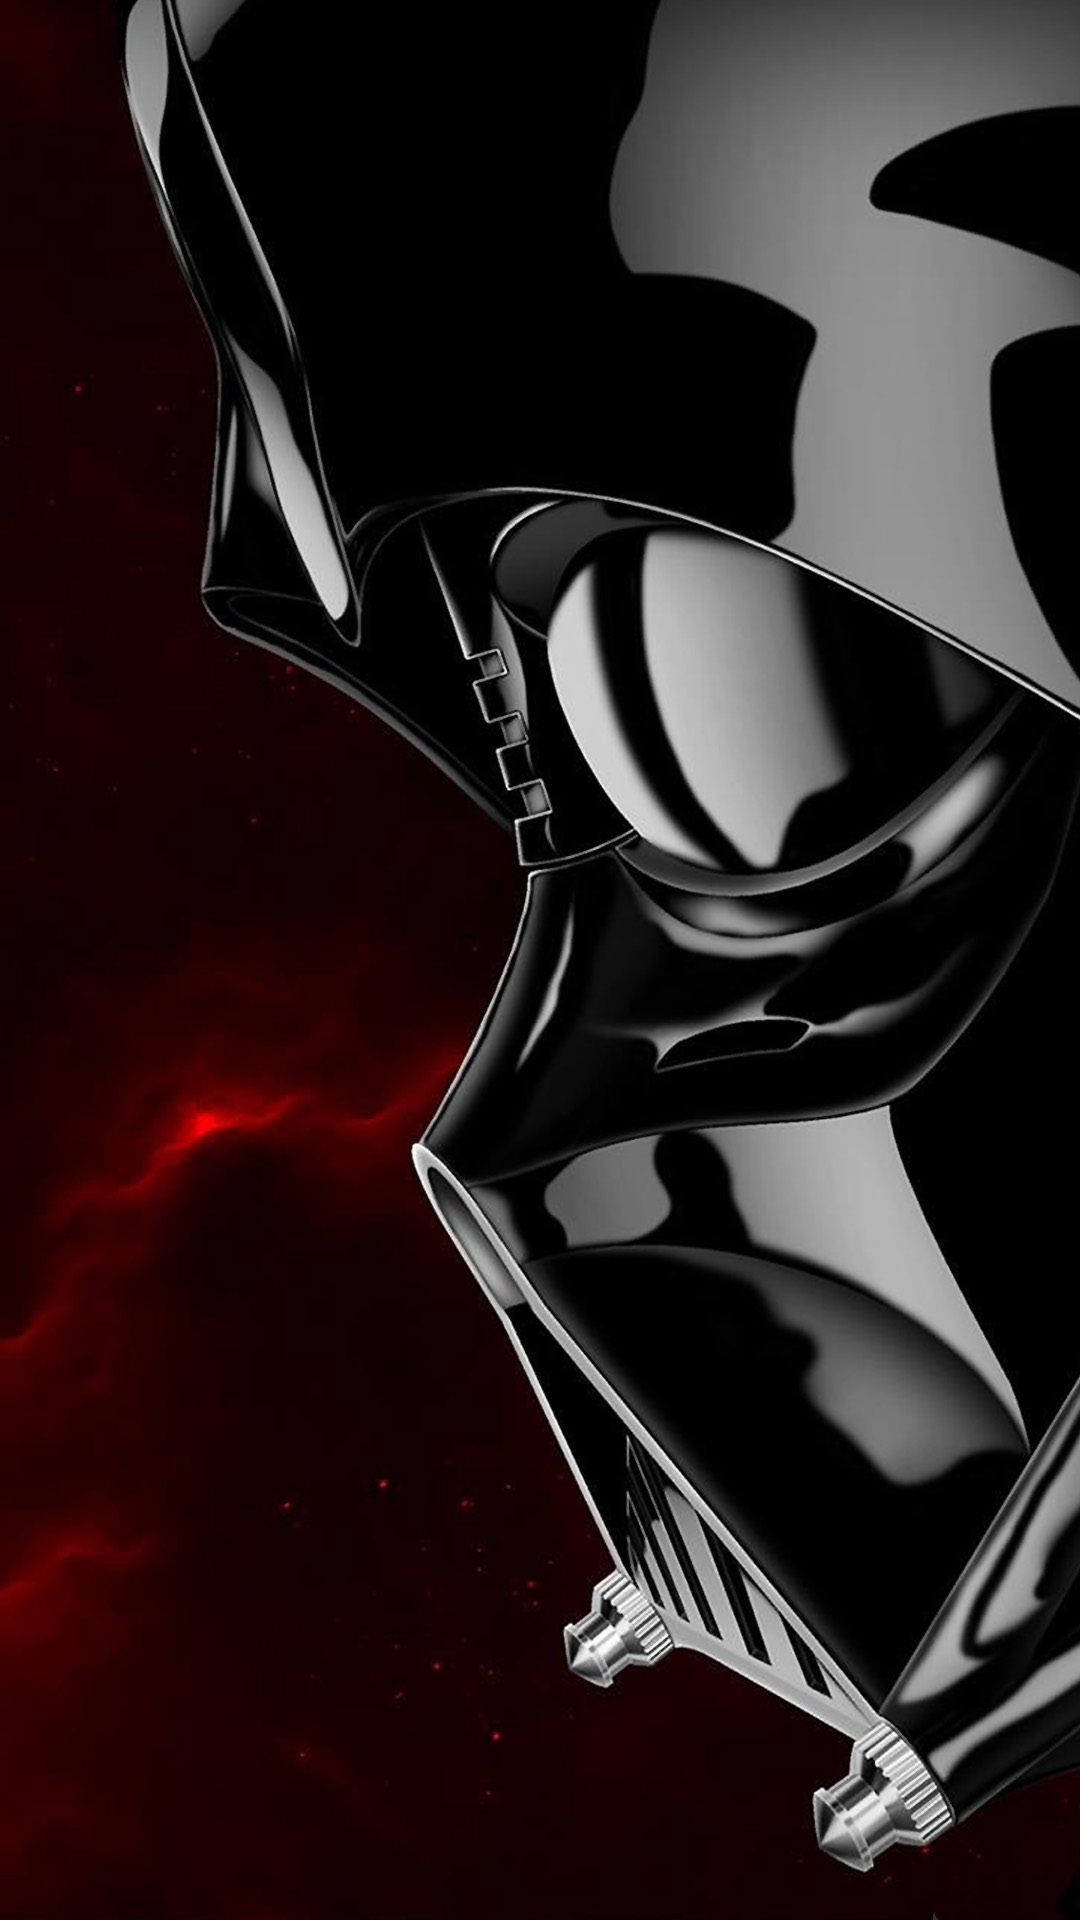 3d Iphone Lock Screen Wallpapers For Darth Vader Wallpaper For Android 600x1067 Download Hd Wallpaper Wallpapertip Feel free to send us your own. 3d iphone lock screen wallpapers for